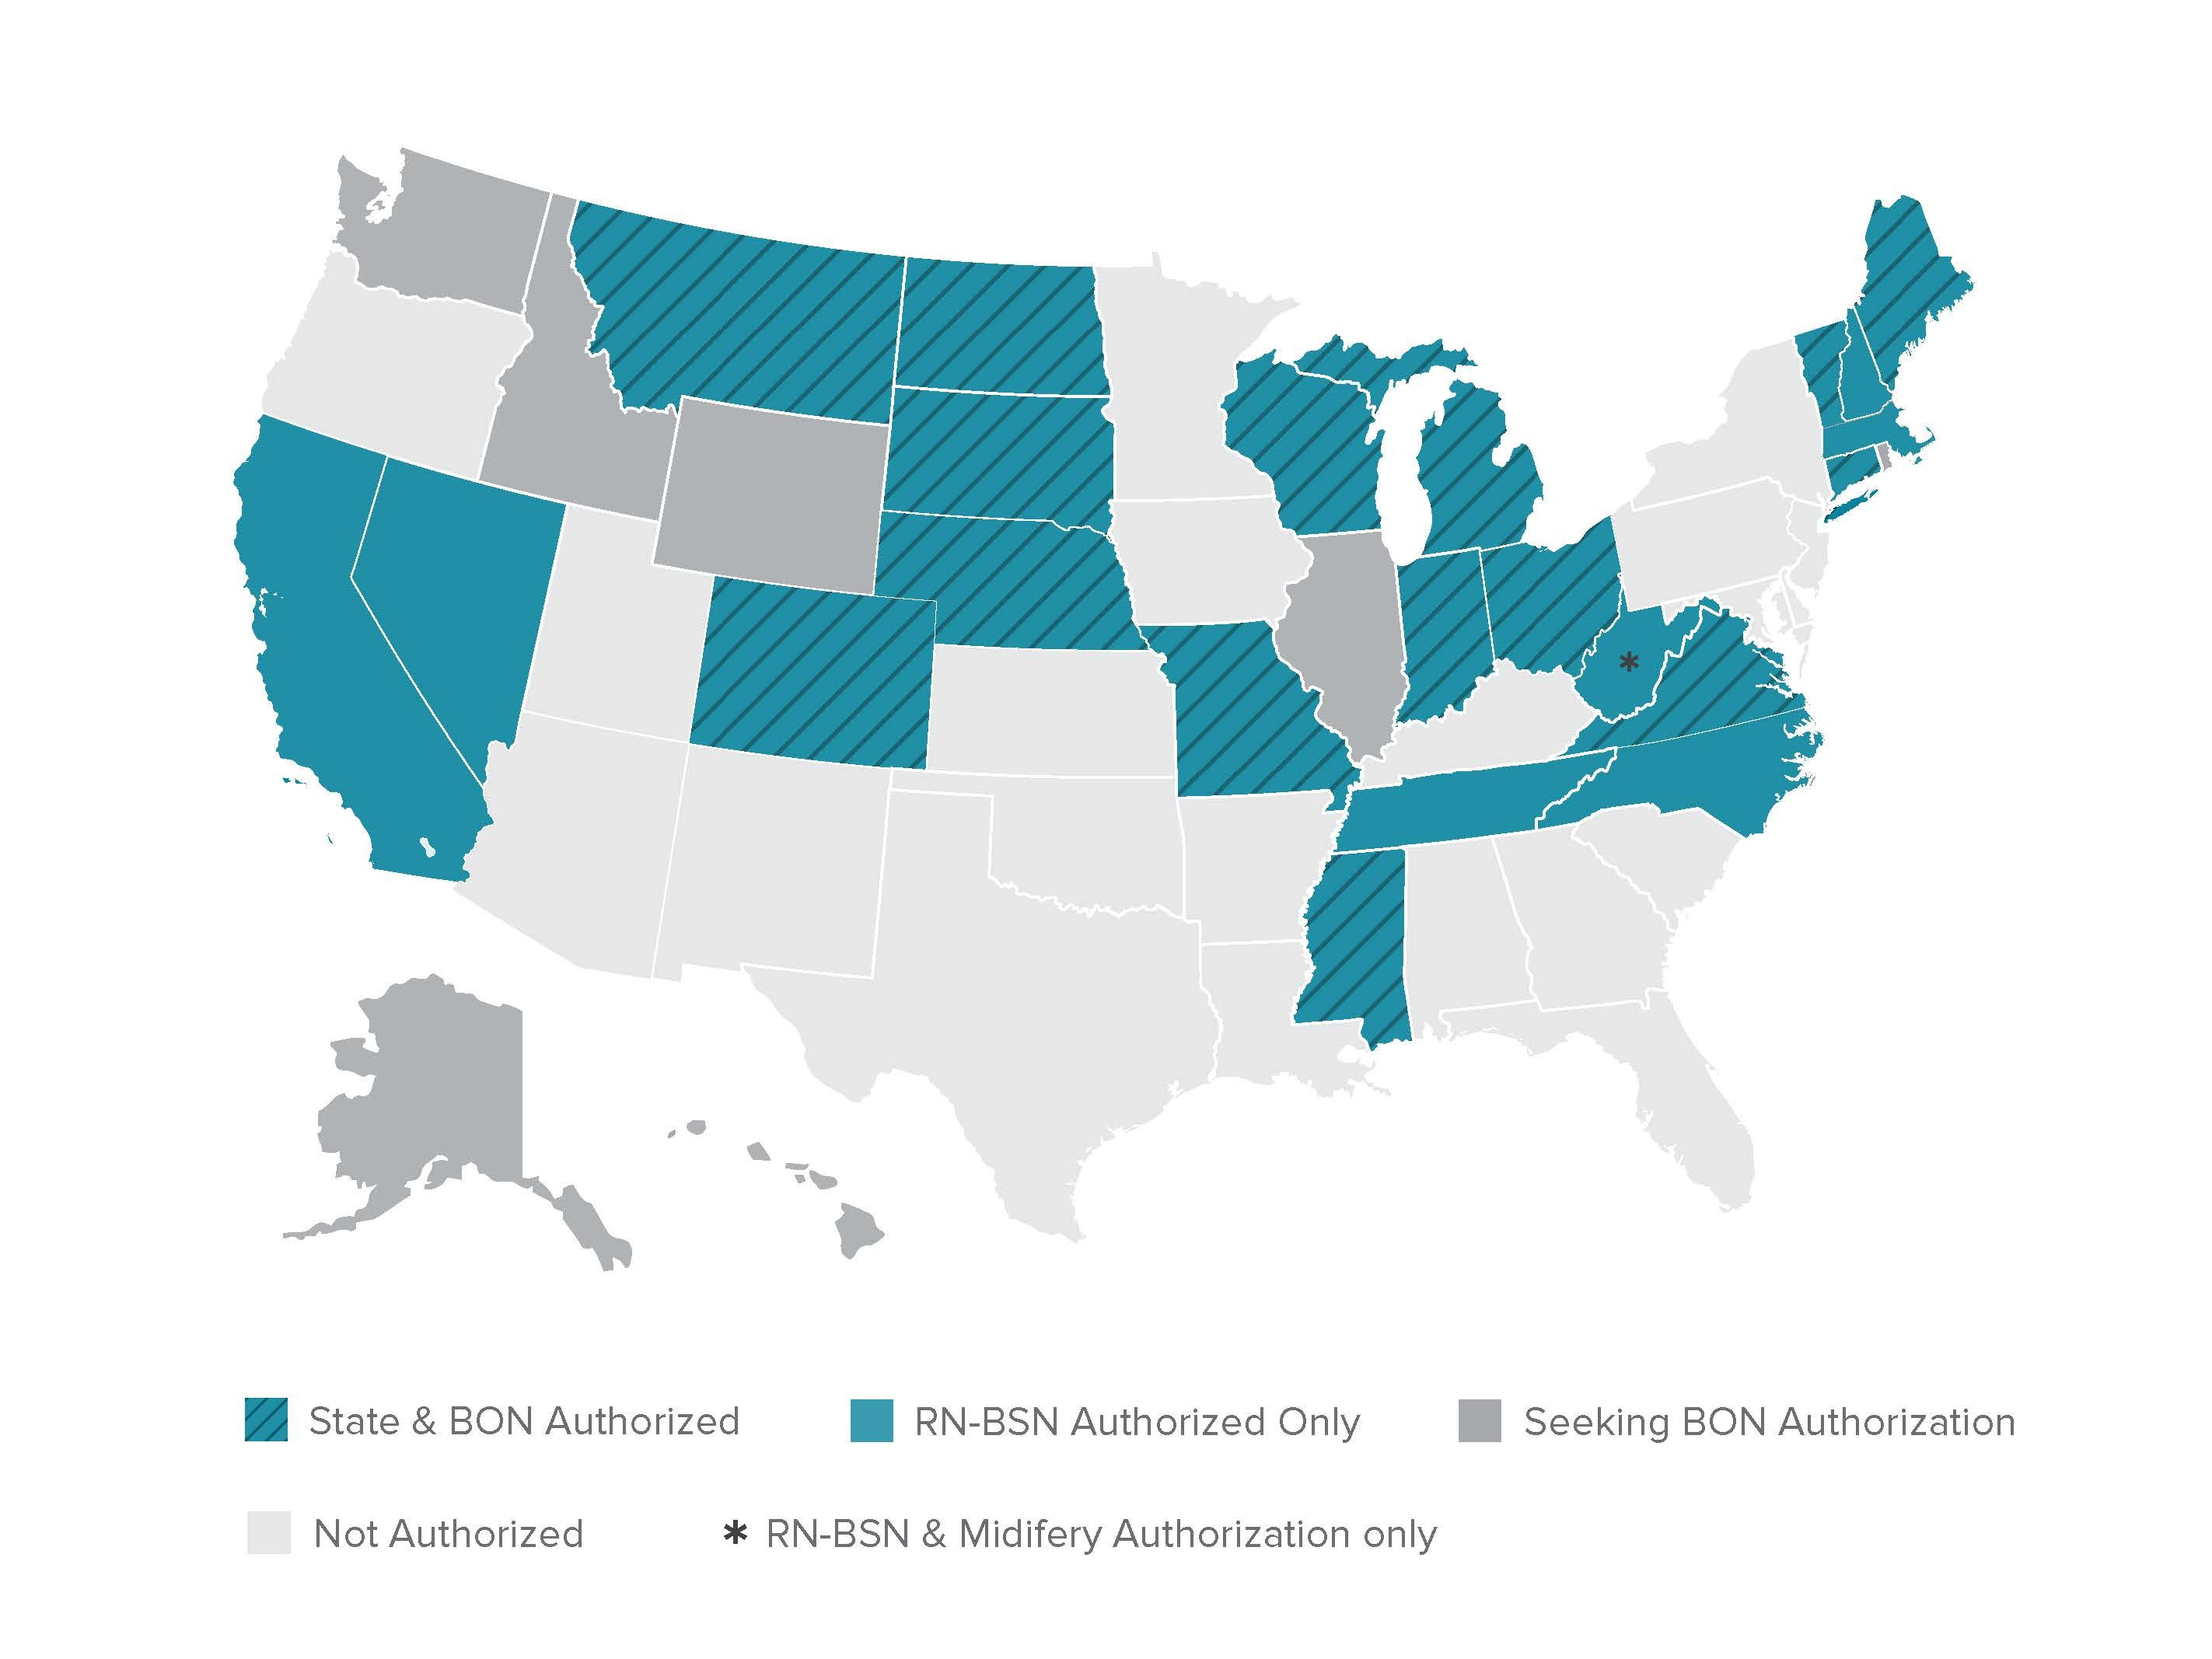 Online Nursing State Authorization Approvals